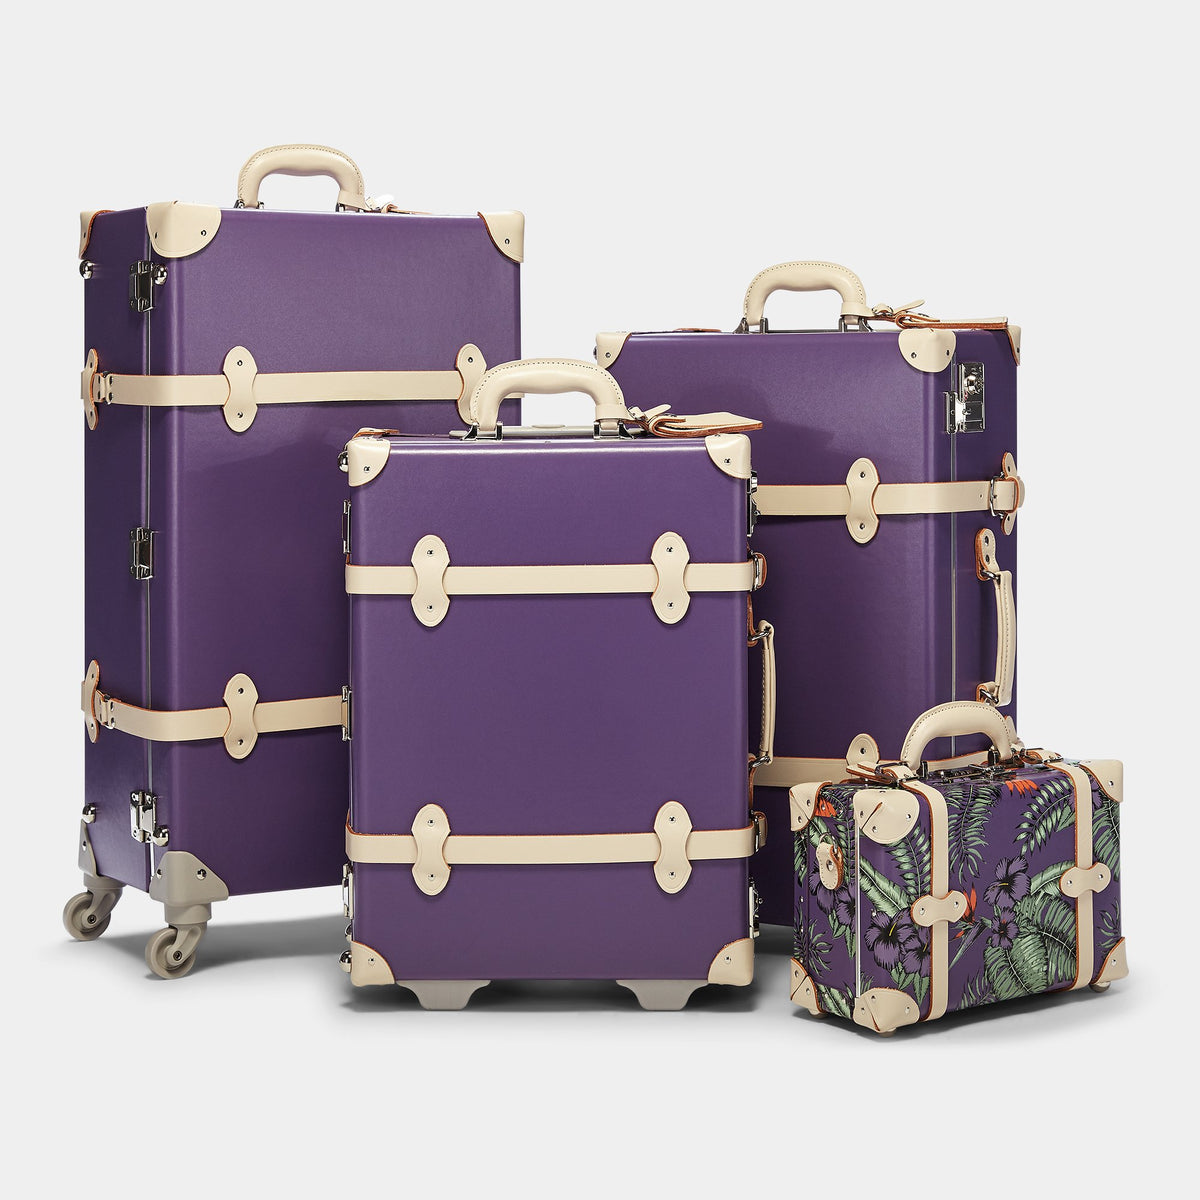 The Botanist Stowaway in Purple - Vintage-Inspired Suitcase - Alongside matching cases in the Botanist Purple Collection